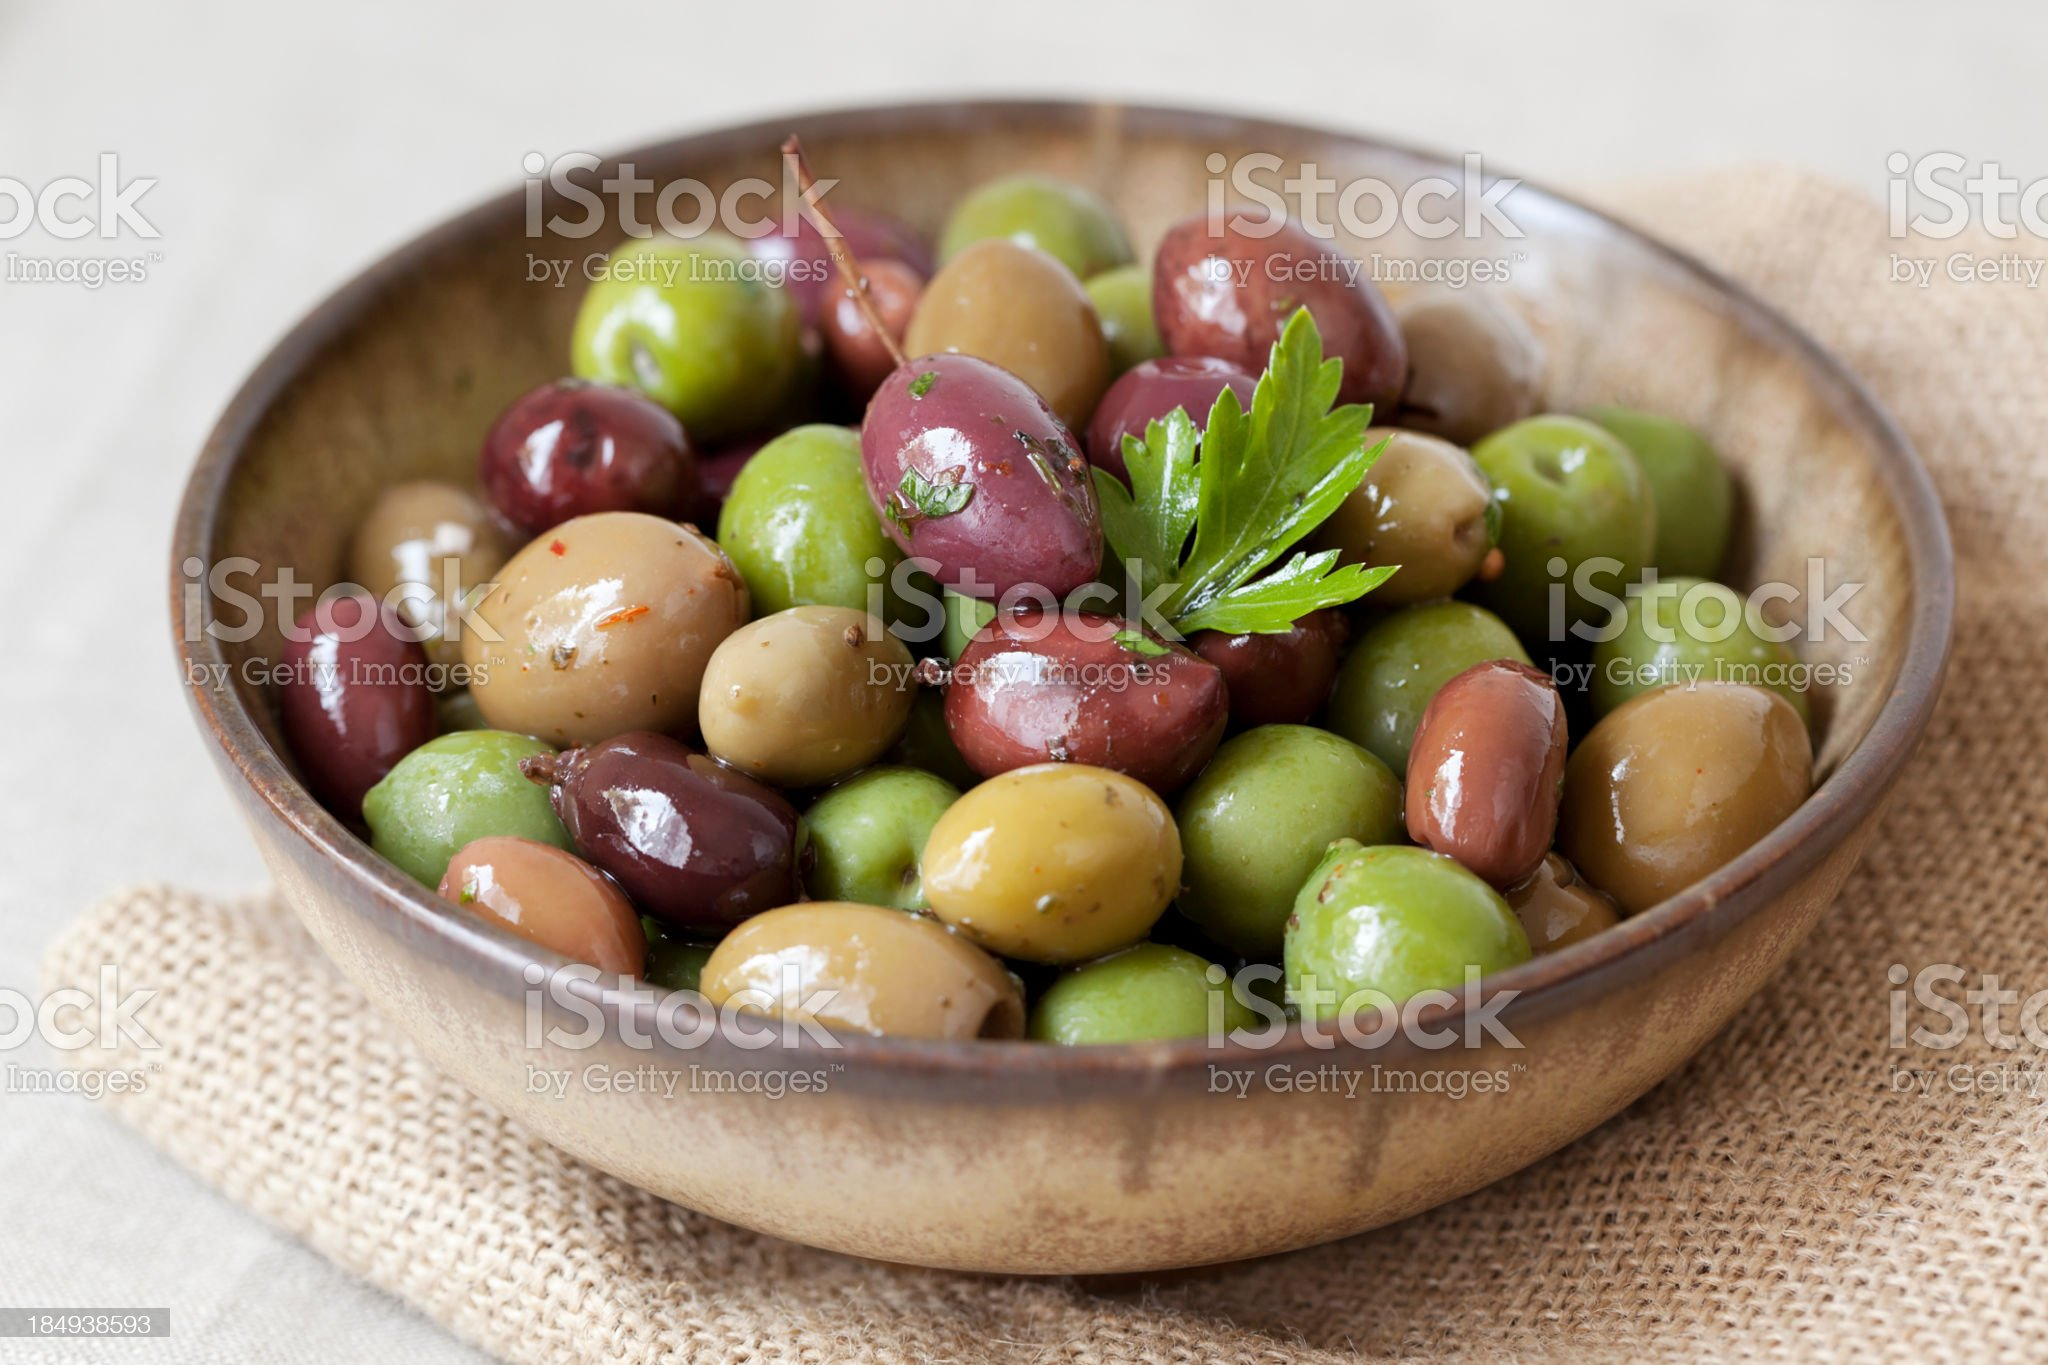 Bowl of olives royalty-free stock photo